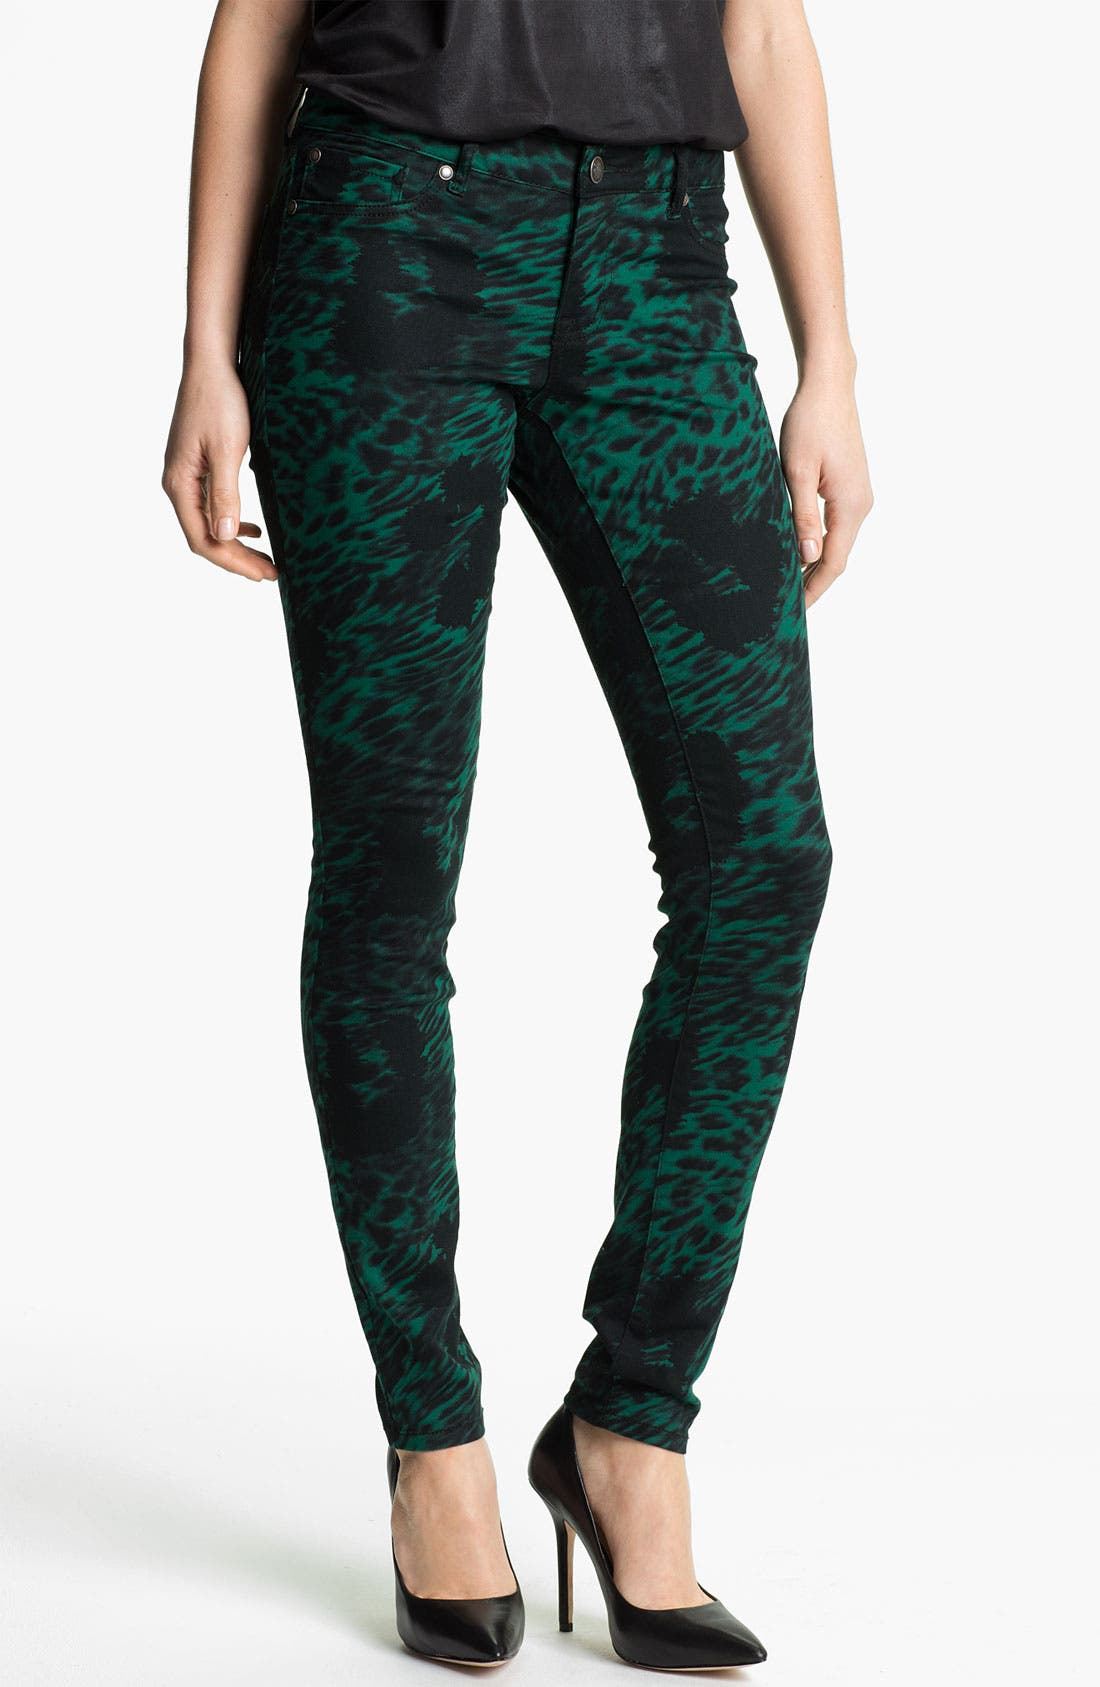 Alternate Image 1 Selected - Jessica Simpson 'Kiss Me' Print Twill Skinny Jeans